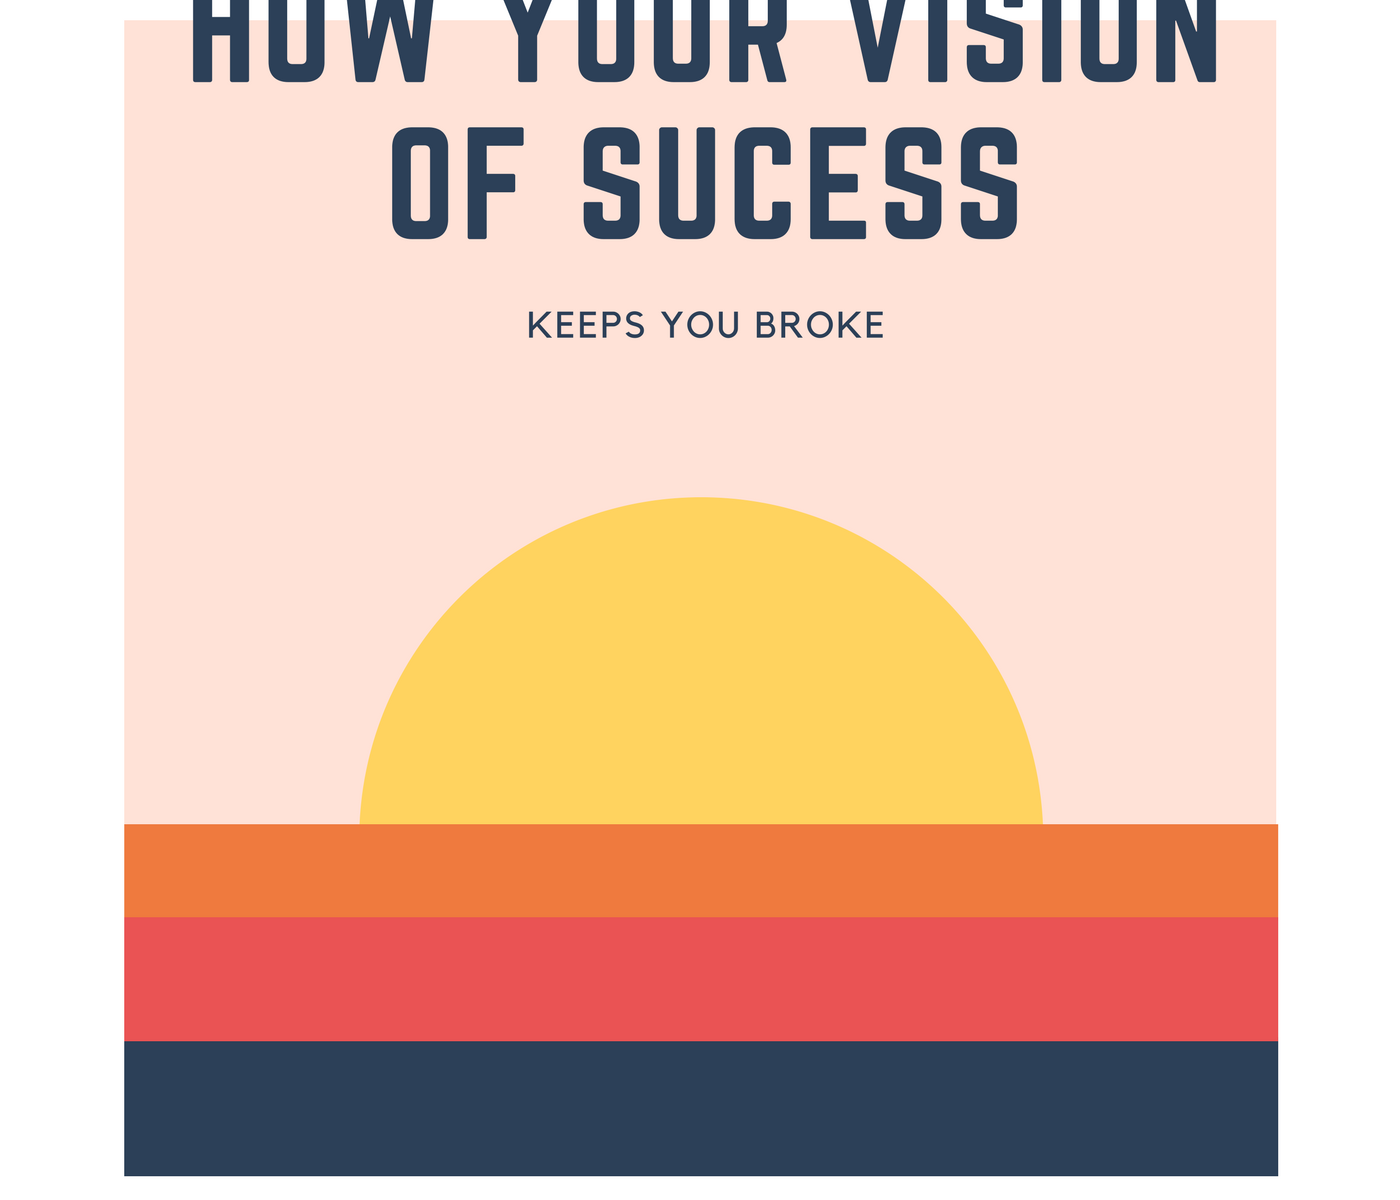 How Your Vision of Success Keeps You Broke